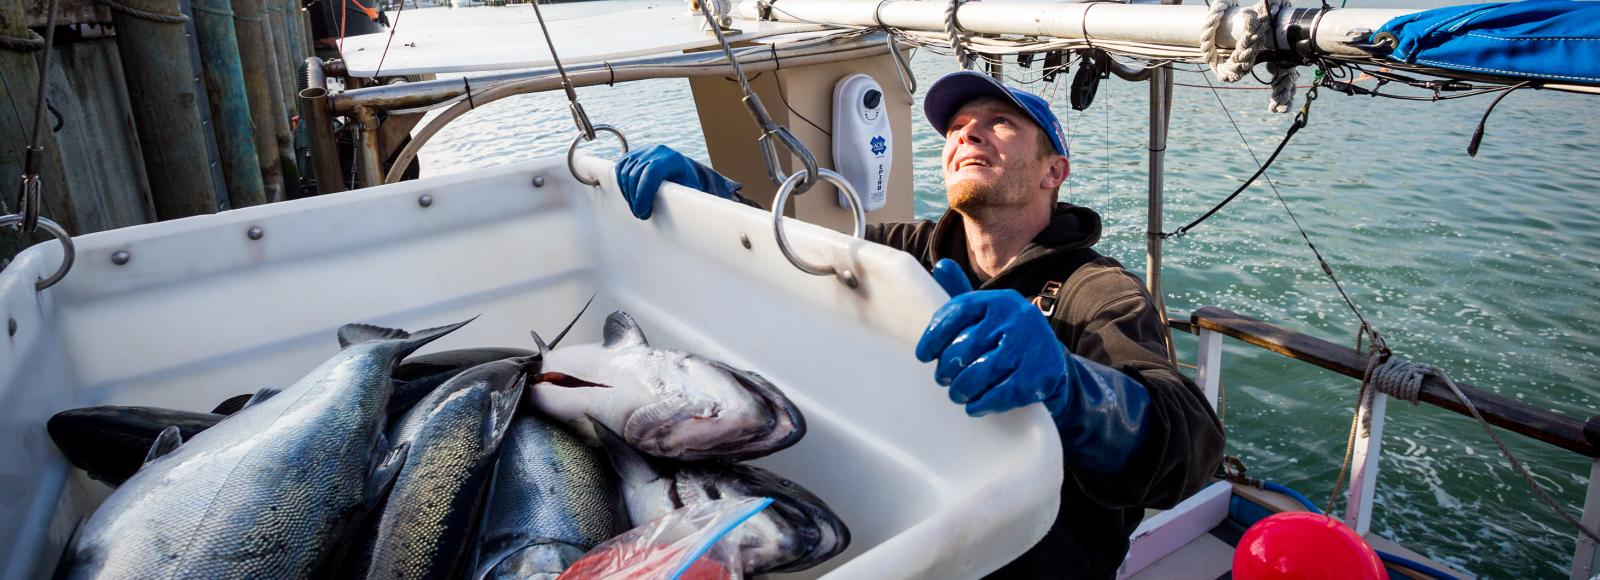 A fisherman, standing in a boat, holds a tub of fresh-caught fish that is suspended by wires. Rigging on his boat and open ocean can be seen behind him.